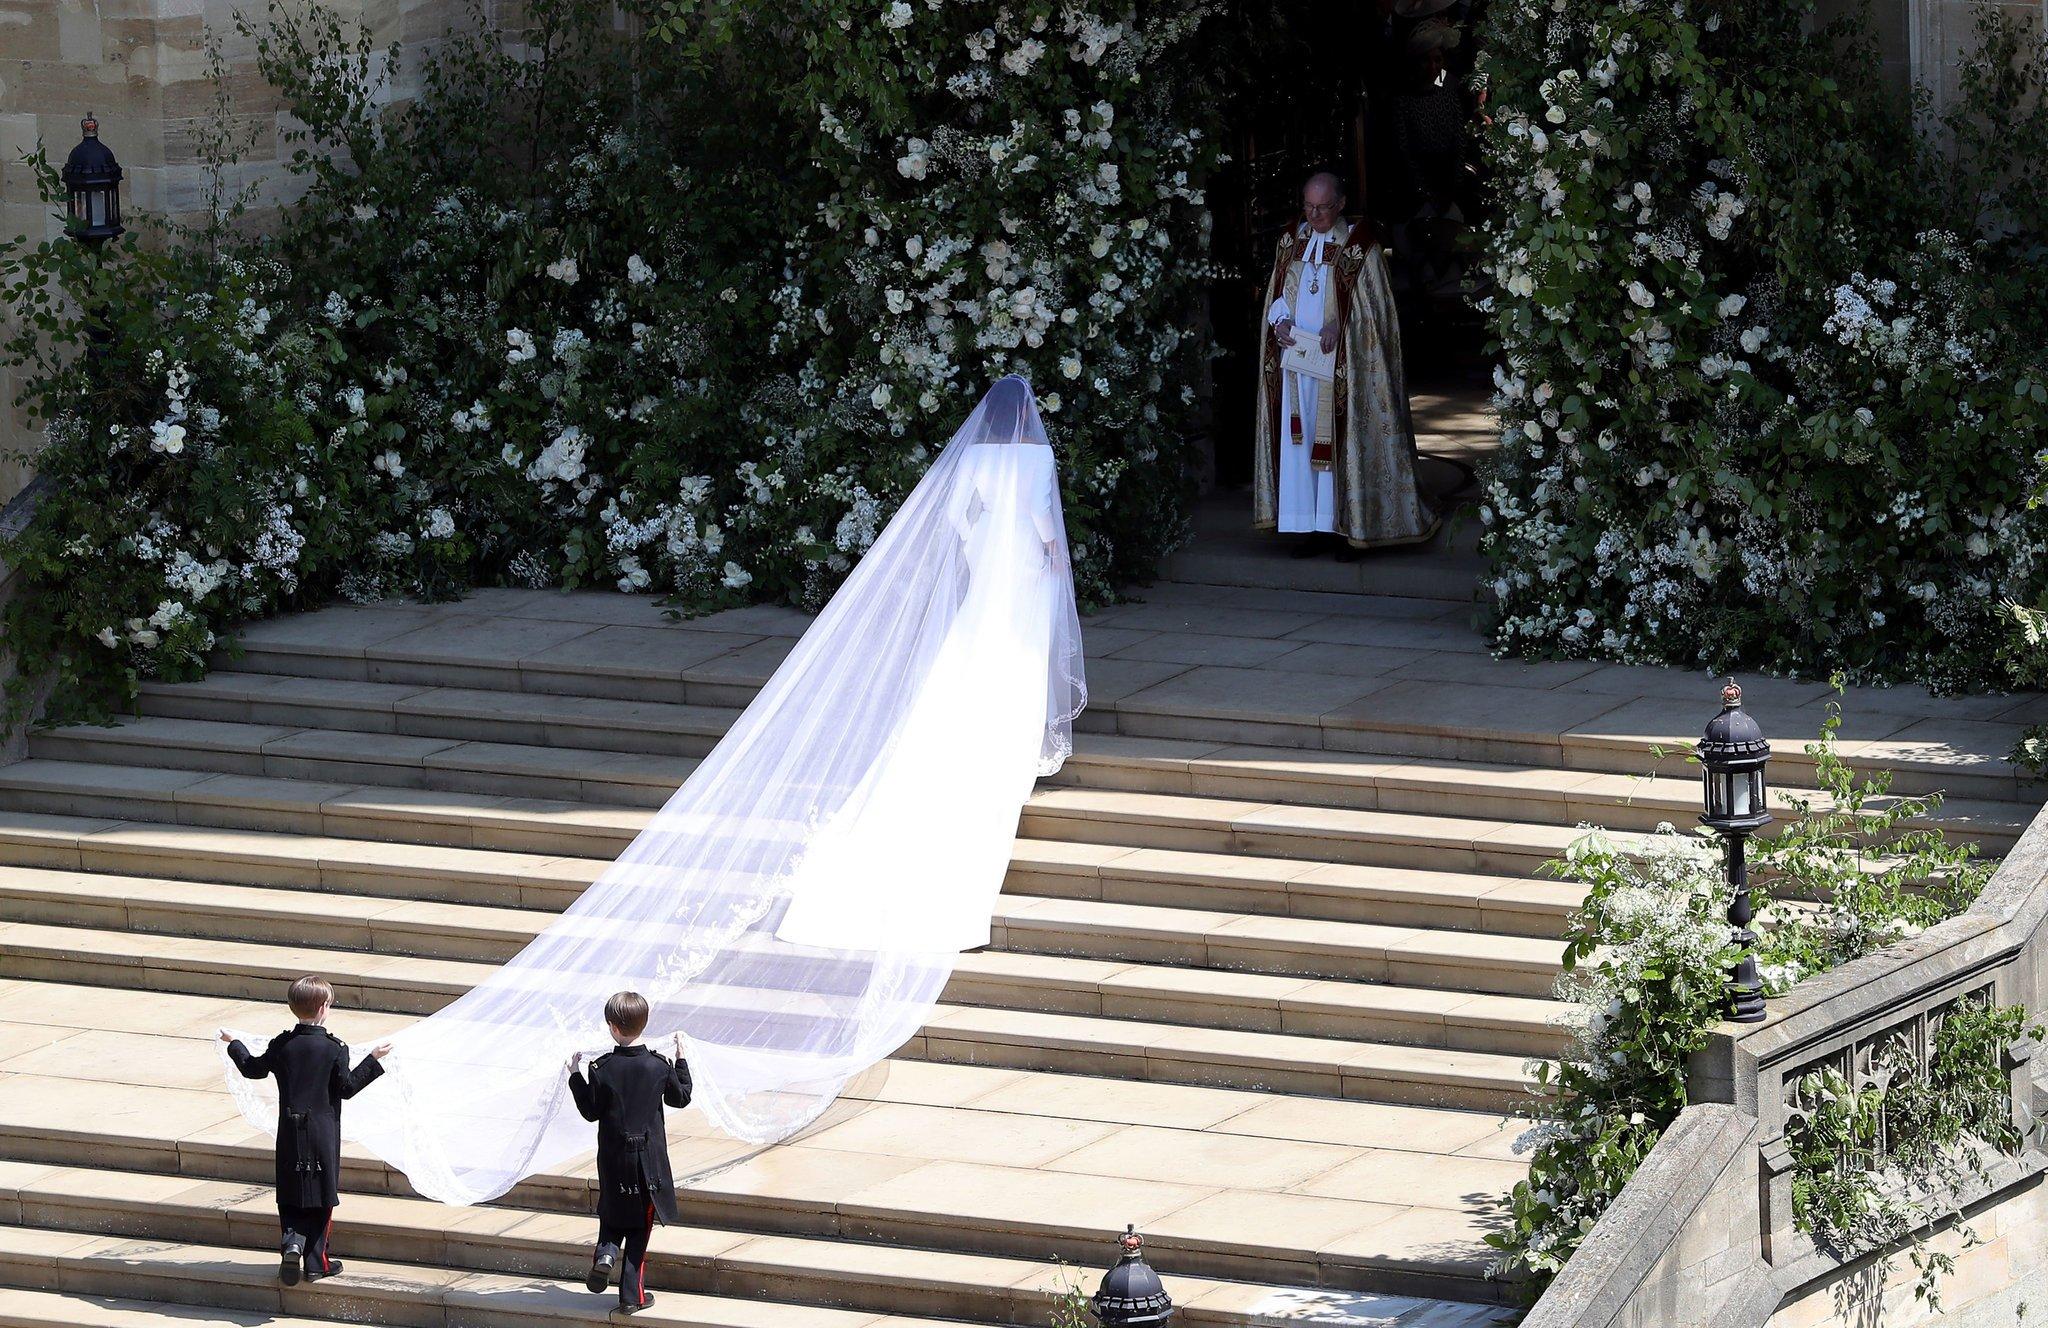 It was the veil, five meters of delicate silk tulle embroidered with flowers representing the 53 countries of the British Commonwealth, Kensington Palace and her home state of California, that carried the weight of history, duty and tradition. It floated out behind, helped along by two little page boys. She wore the veil with Queen Mary's  diamond and platinum bandeau tiara, which had been lent to her by her new grandmother-in-law, Queen Elizabeth II. The tiara, created in 1932, is dominated by a central brooch that dates to 1893.